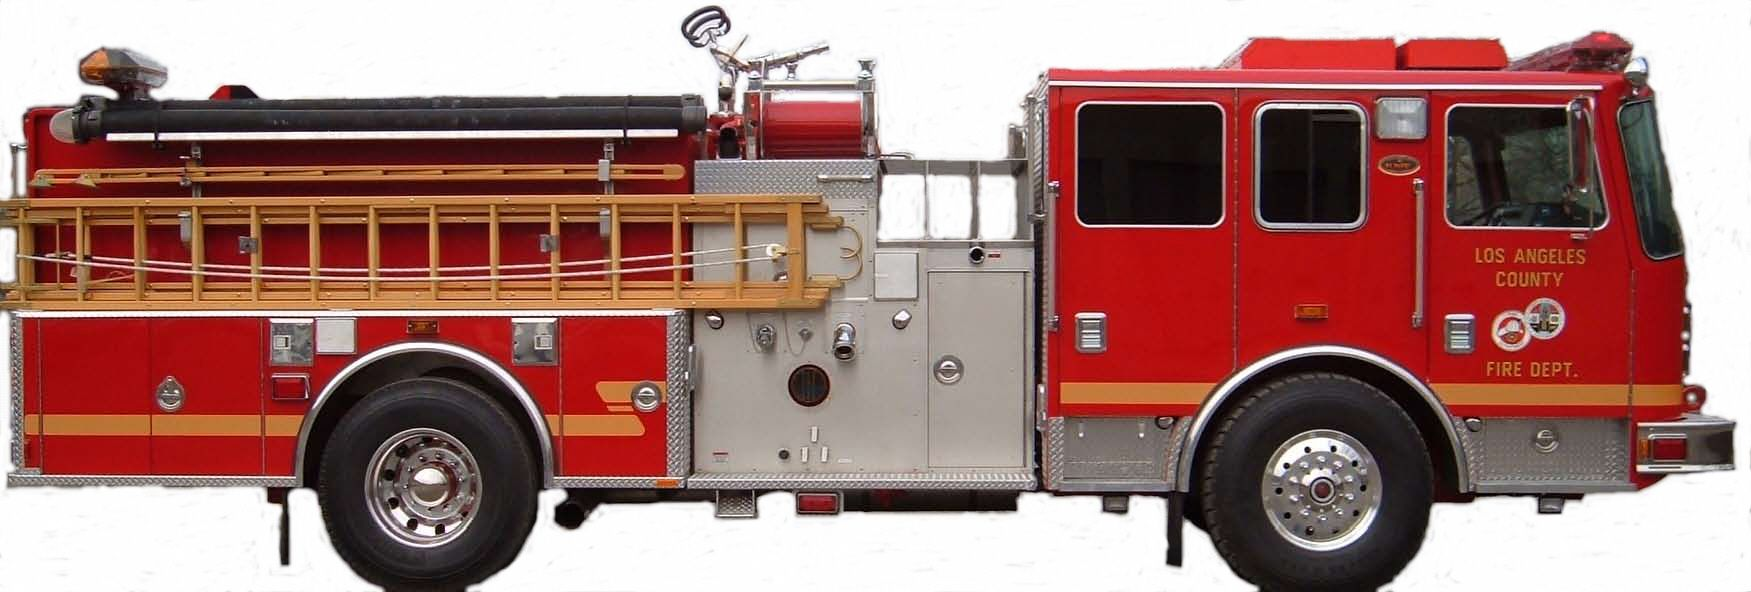 la county fire truck fire department pinterest fire trucks rh pinterest com Fire Truck Pumps Diagram Fire Truck Placement